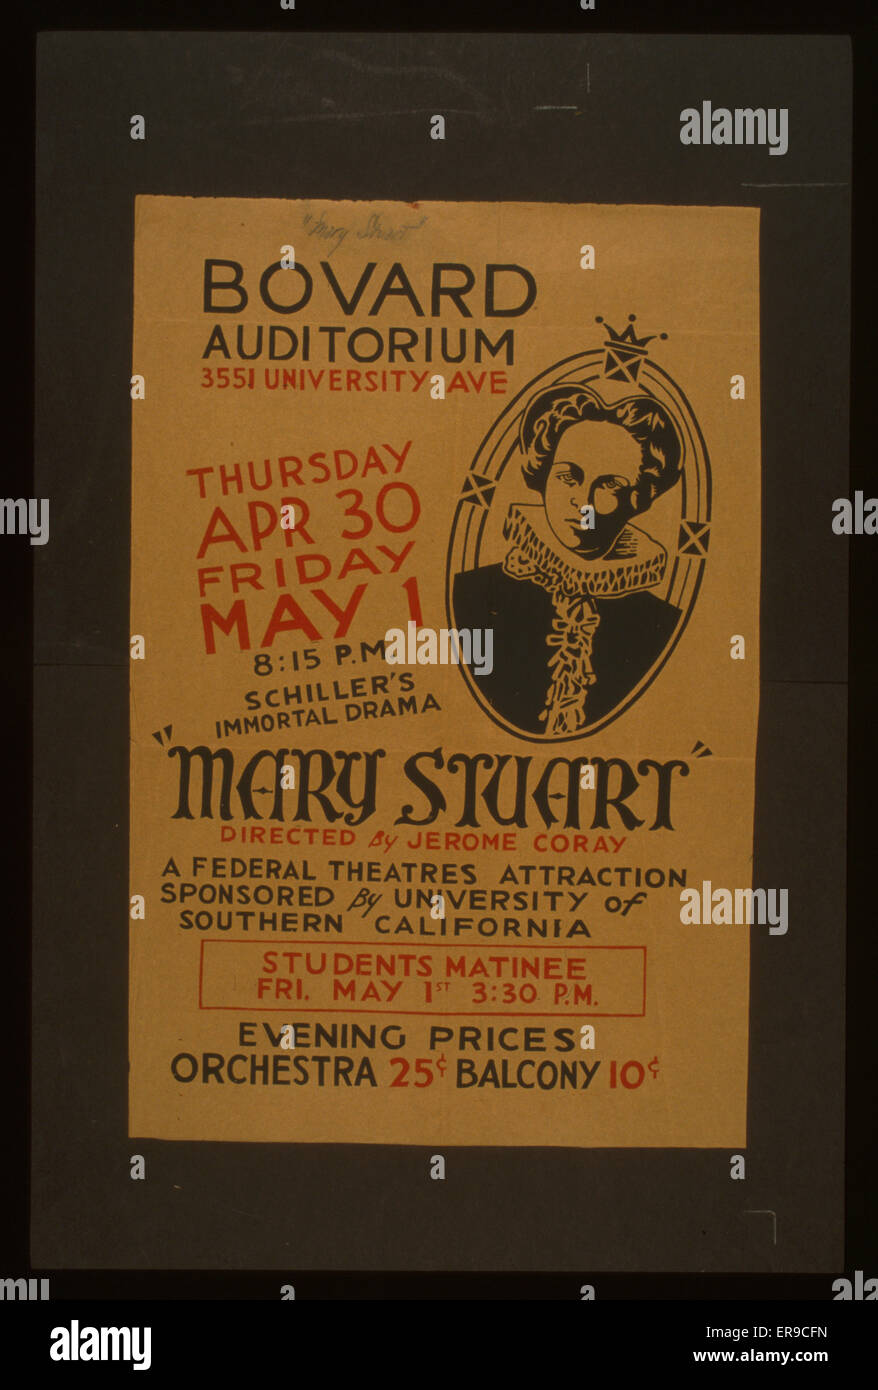 Mary Stuart directed by Jerome Coray. Poster for Federal Theatre Project presentation of Mary Stuart at the Bovard - Stock Image